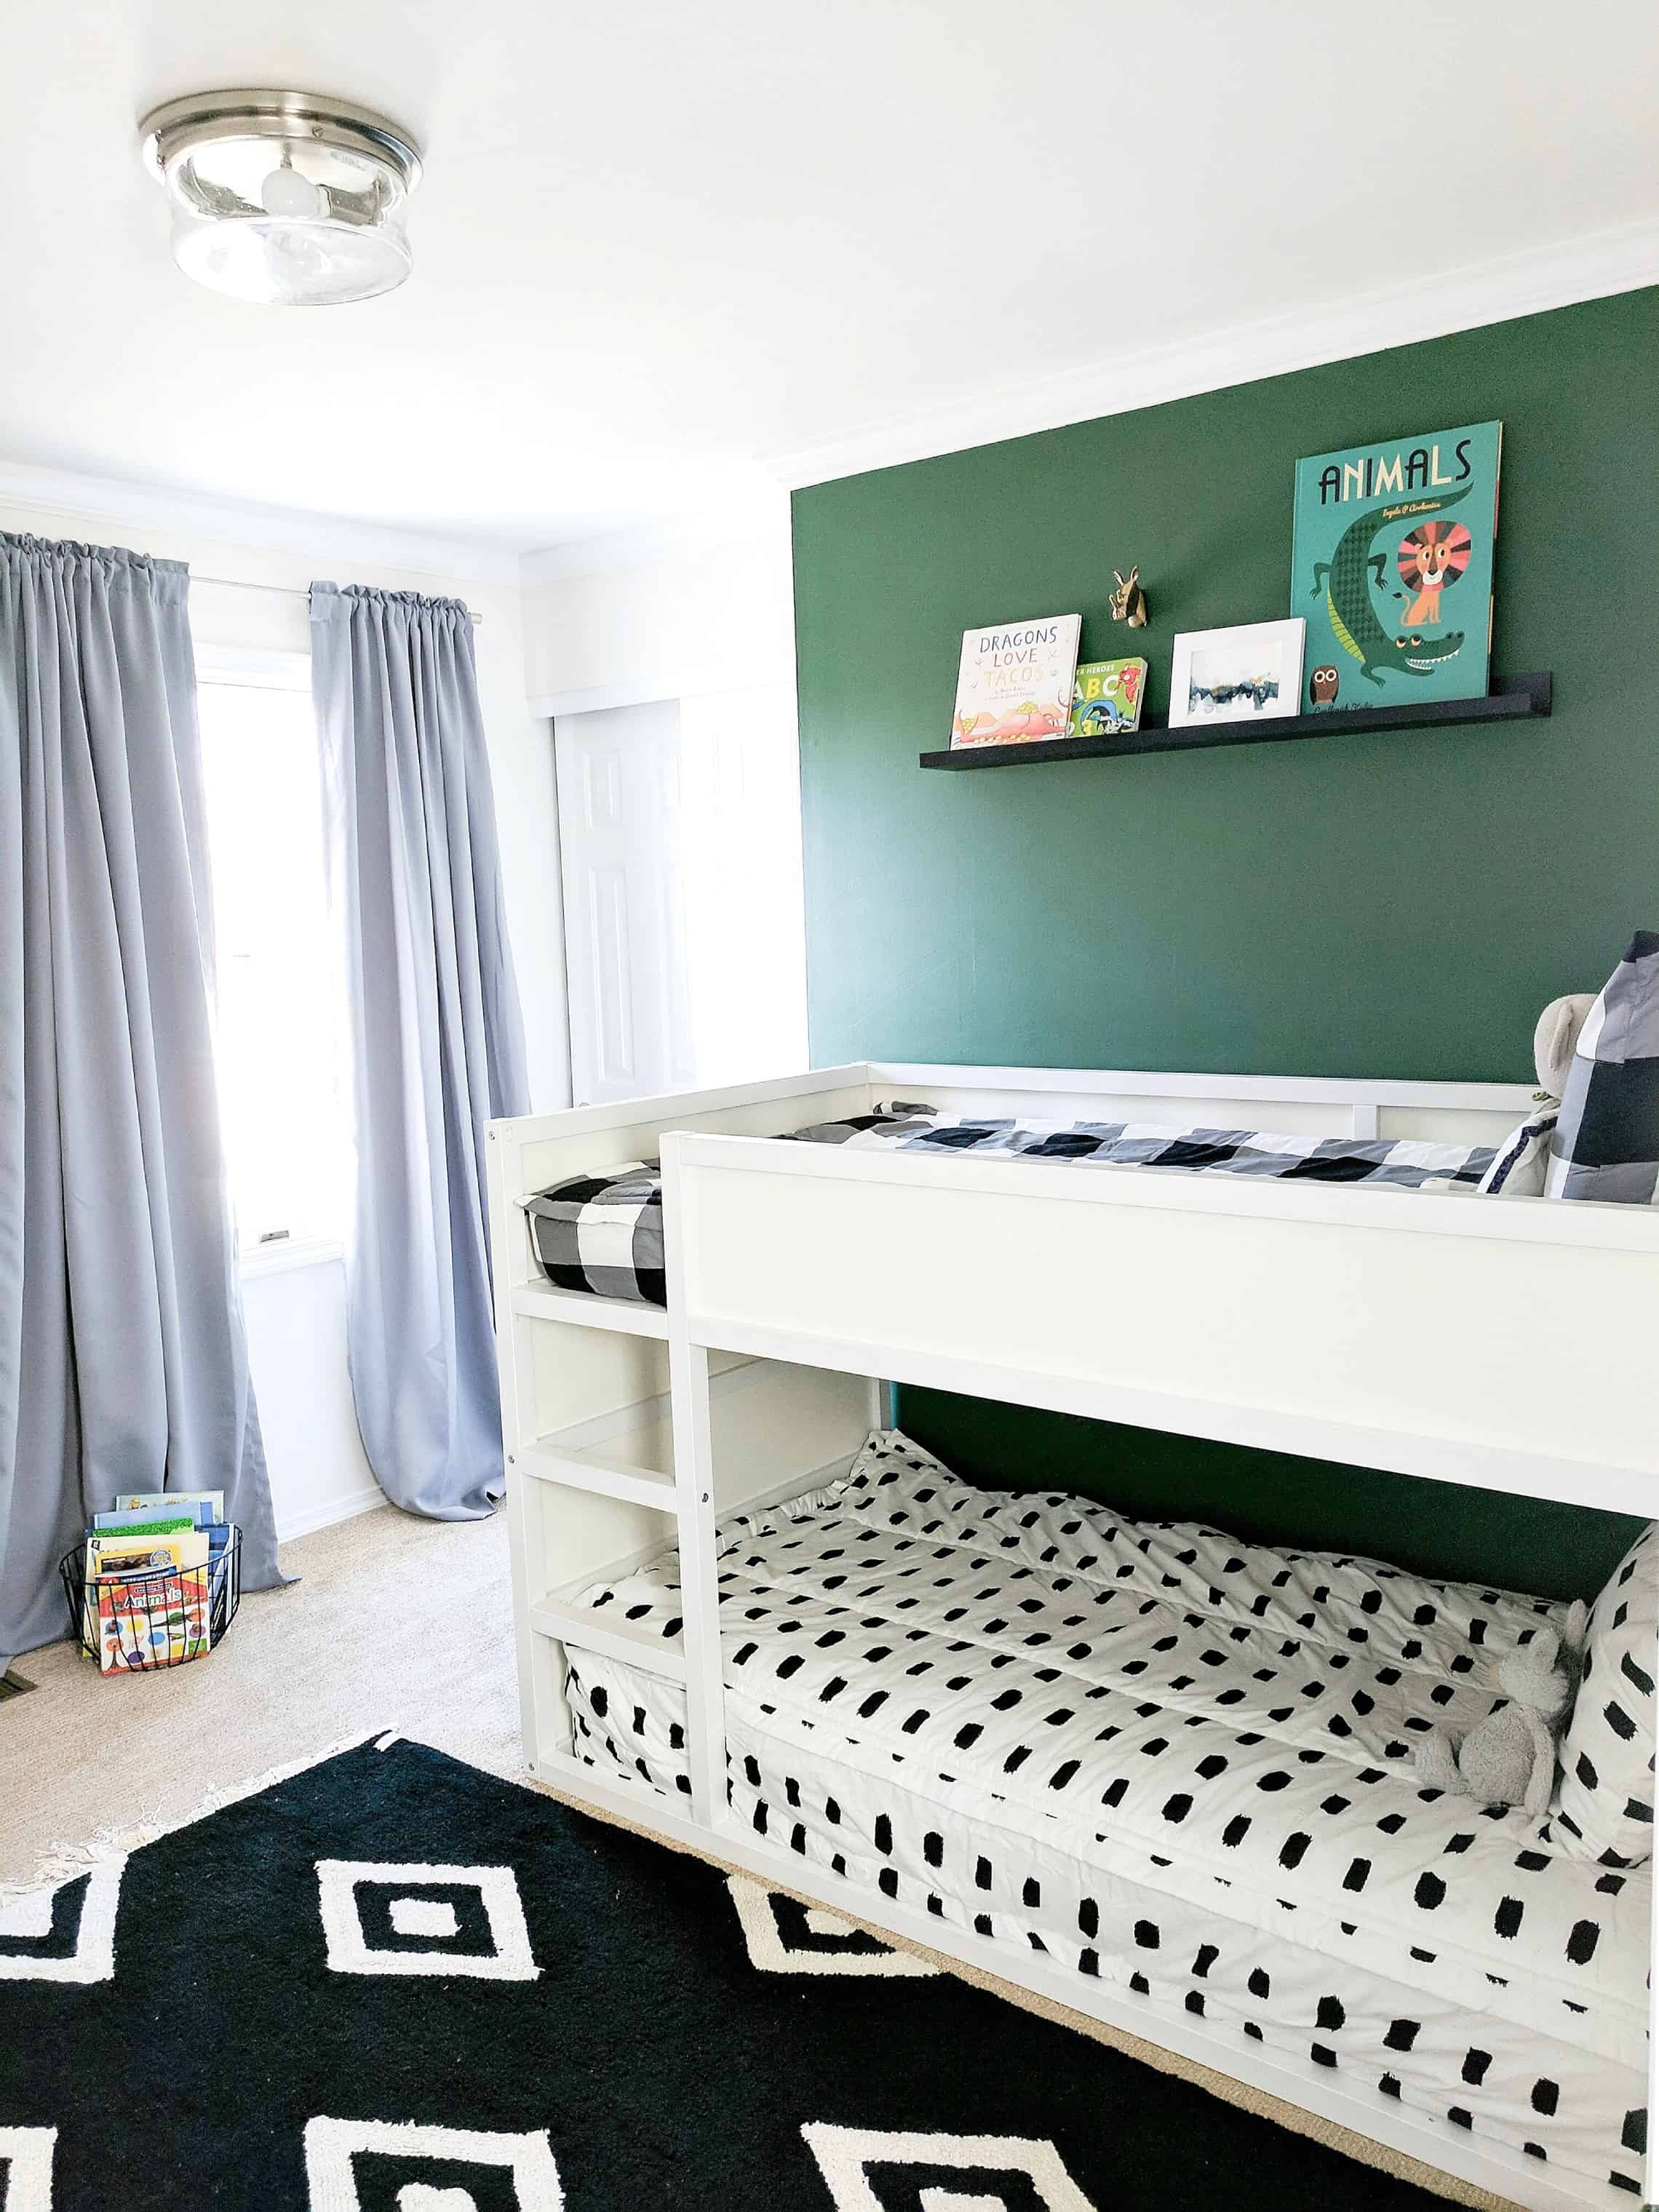 Bunk beds in kids room against green walll